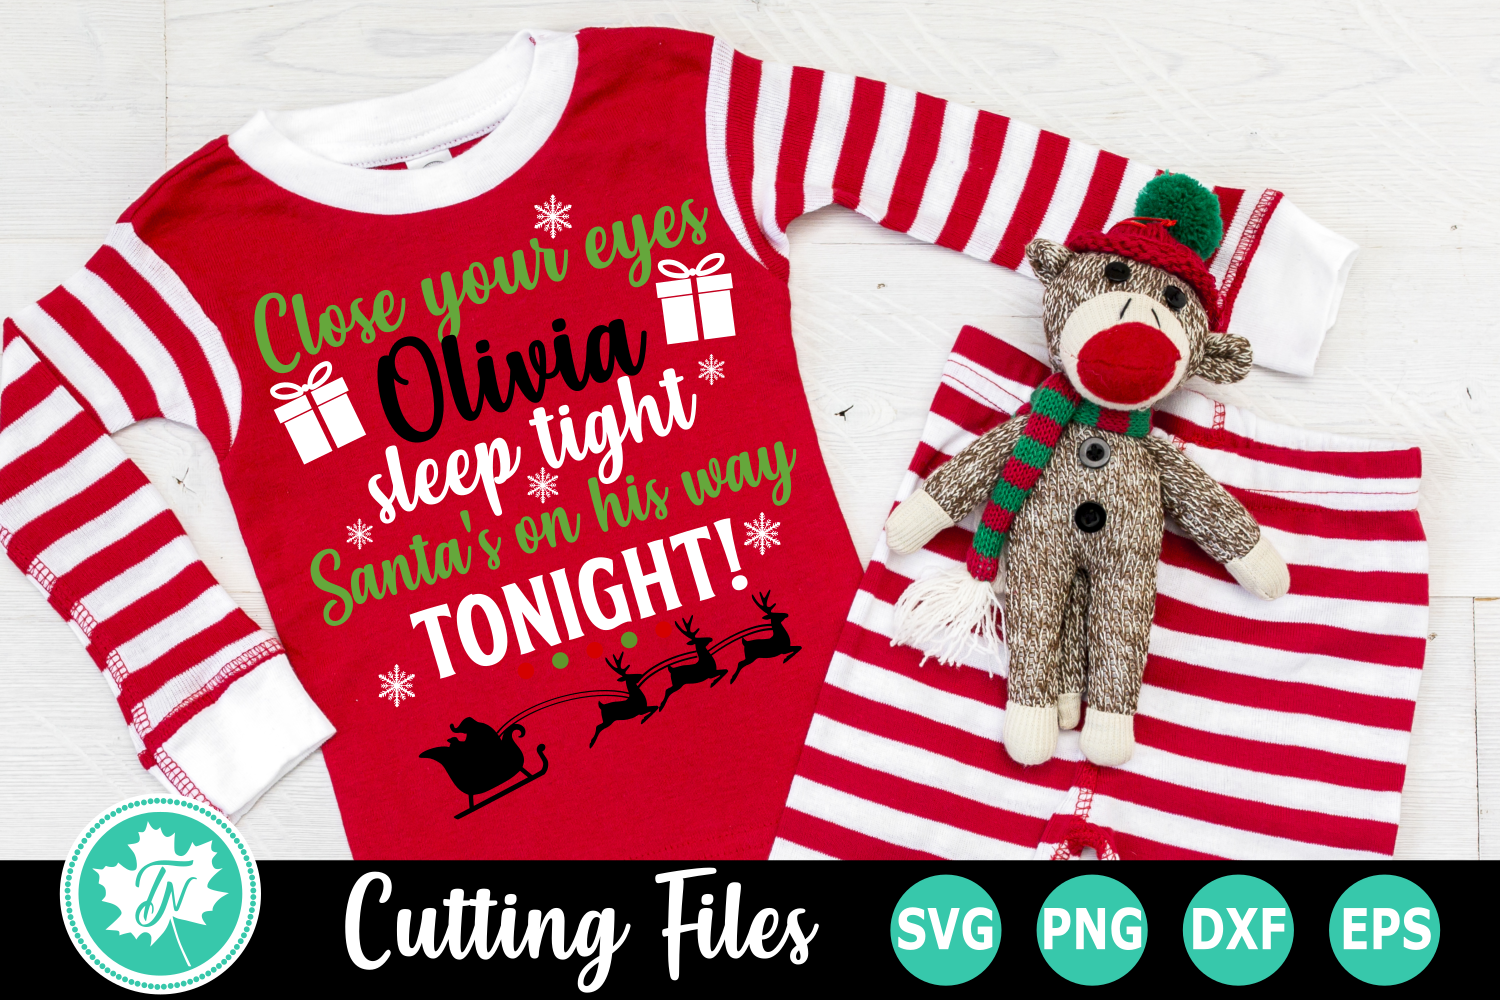 Close Your Eyes Sleep Tight - A Christmas SVG File example image 1